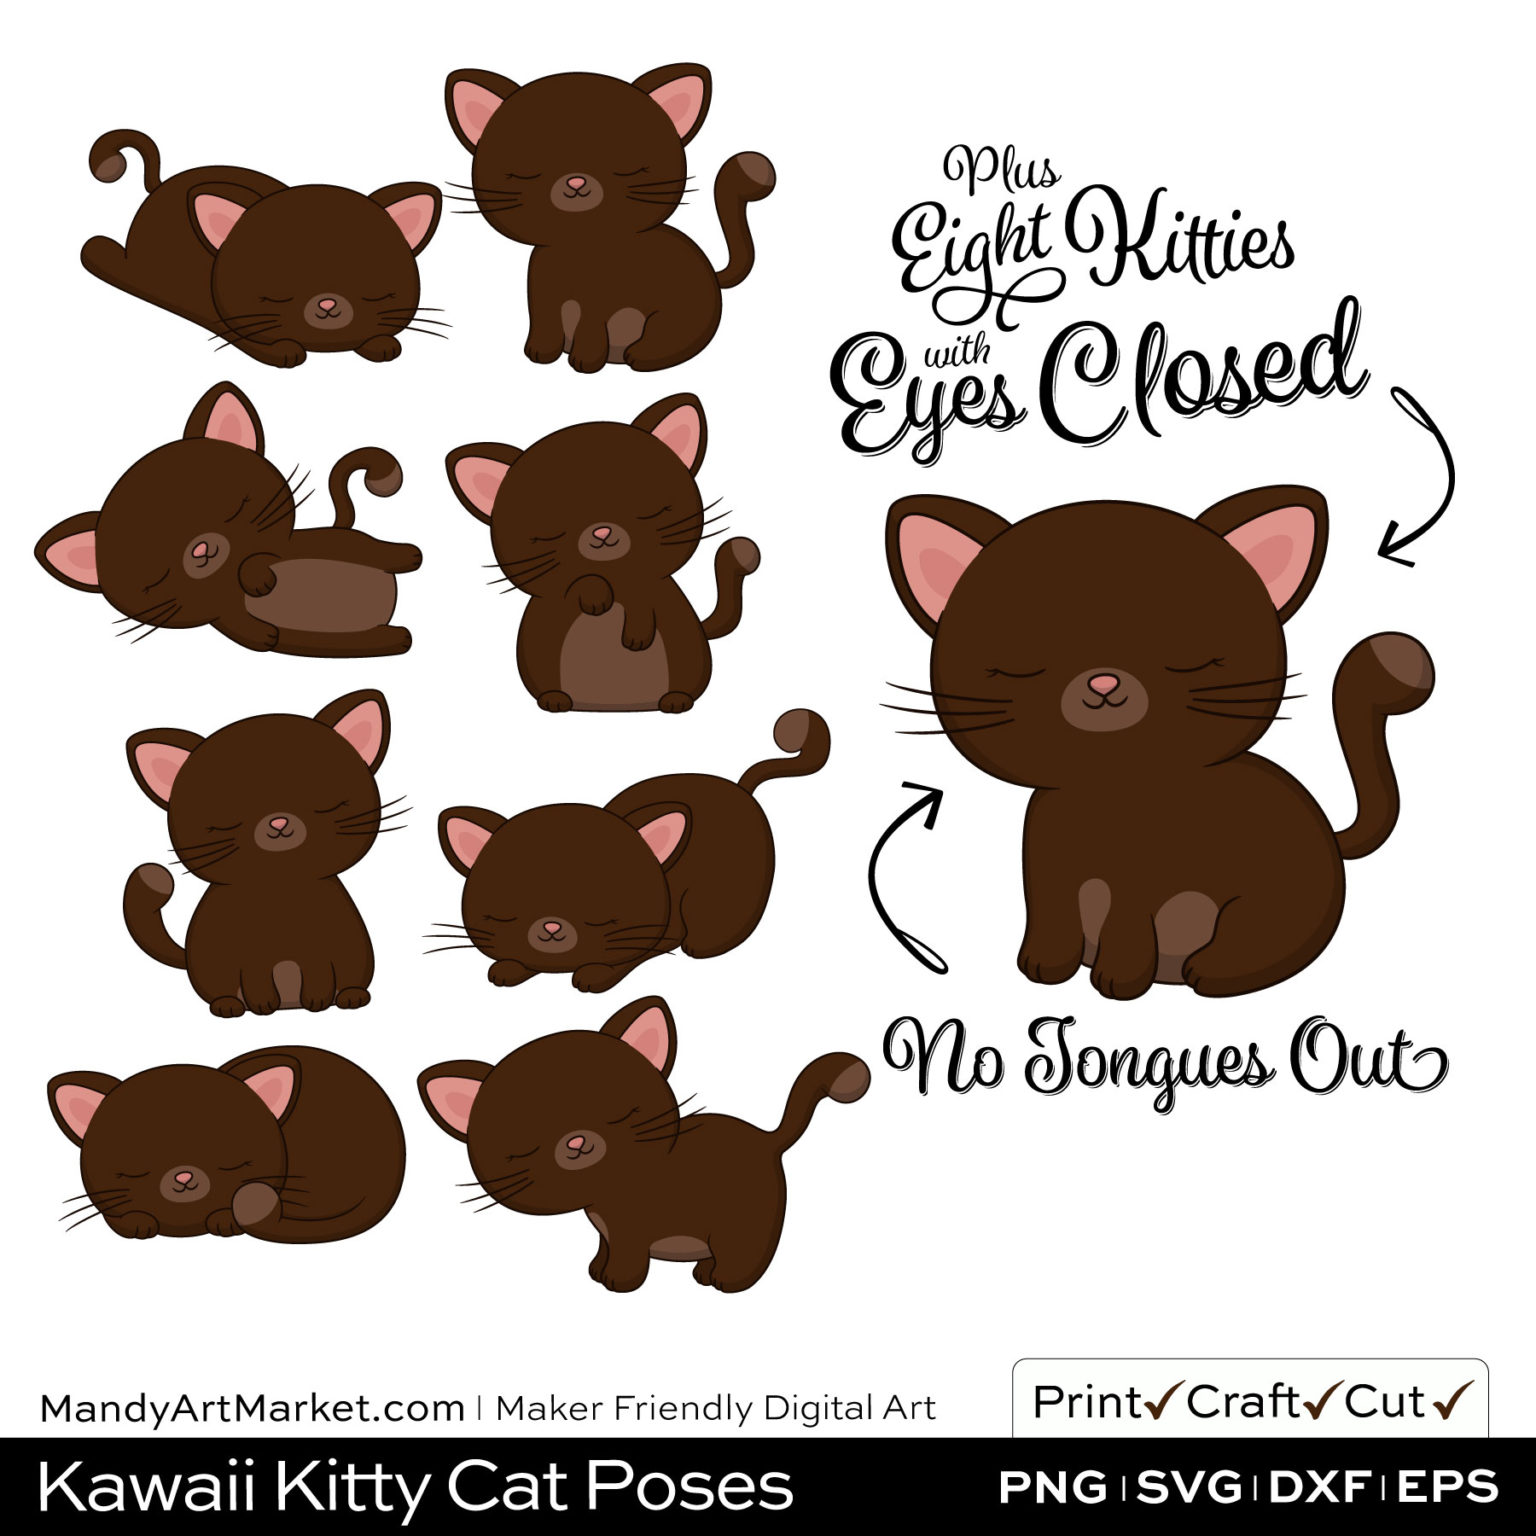 Chocolate Brown Kawaii Kitty Cat Poses Clipart PNGs Included in Download